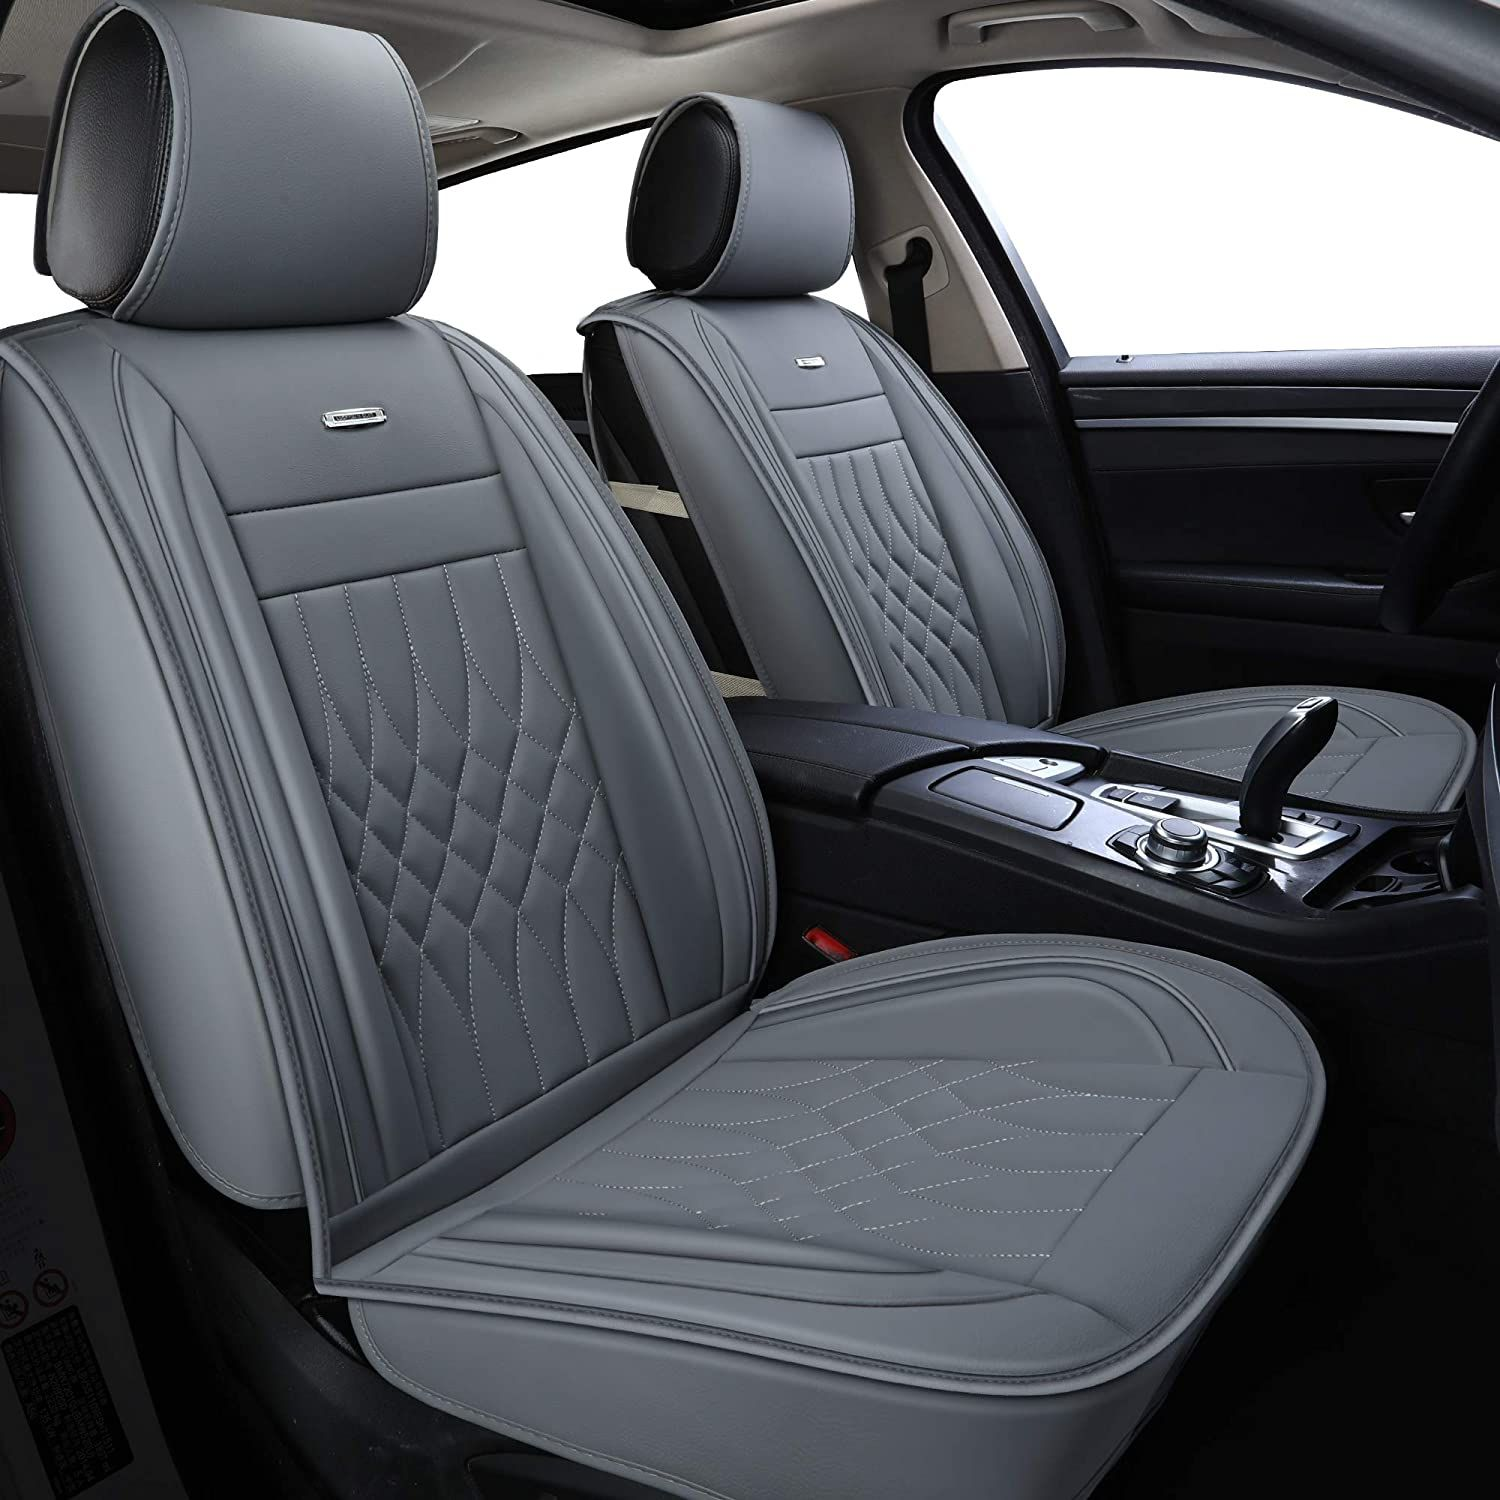 Luckyman Club Gray Car Seat Covers Fit Most Sedan Suv Truck Fit